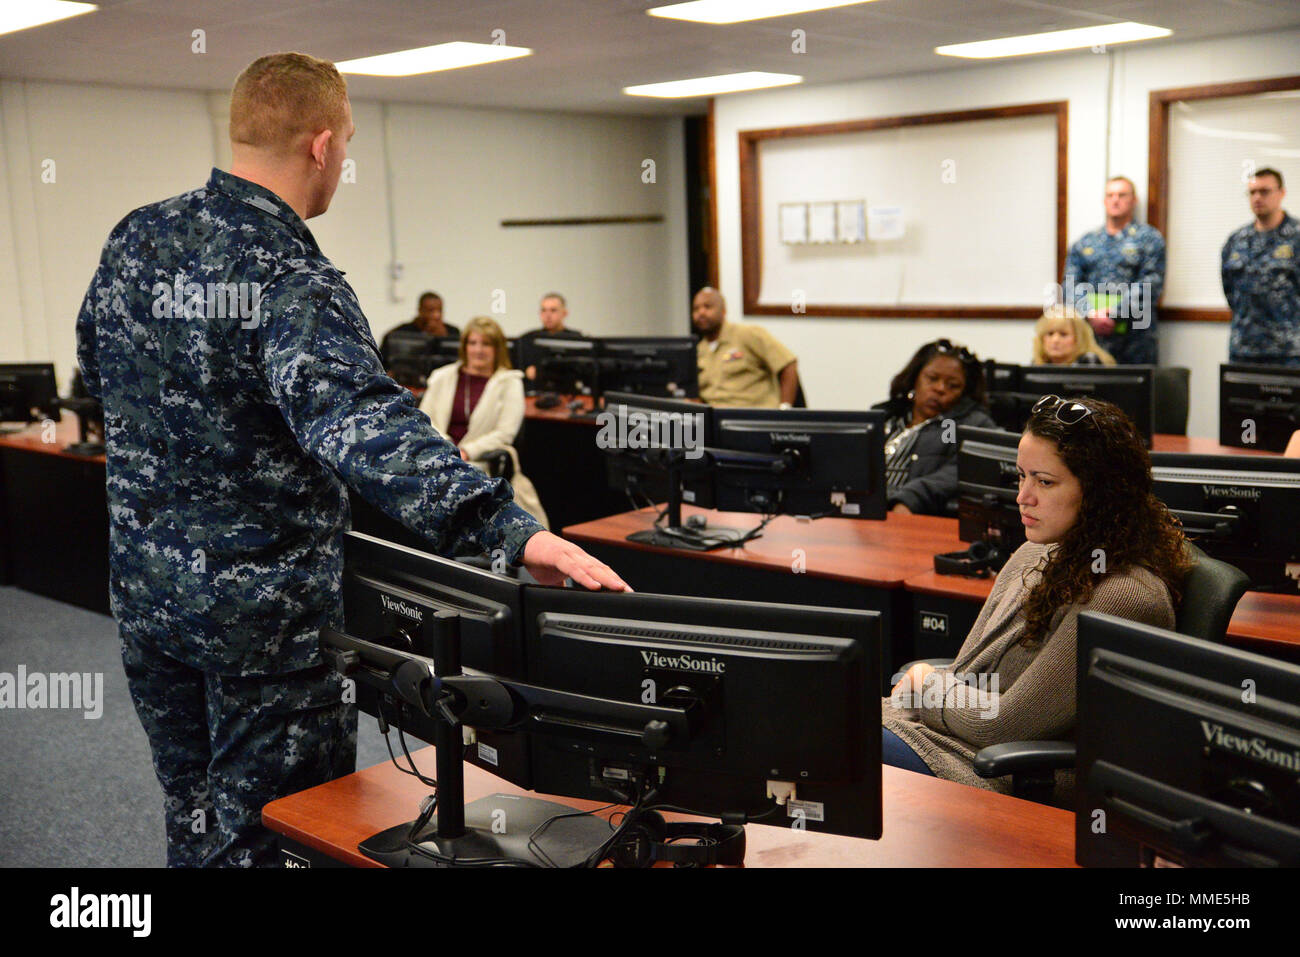 surface warfare officer stock photos surface warfare officer stock rh alamy com Surface Warfare Officer Resume Surface Warfare Officer Pin